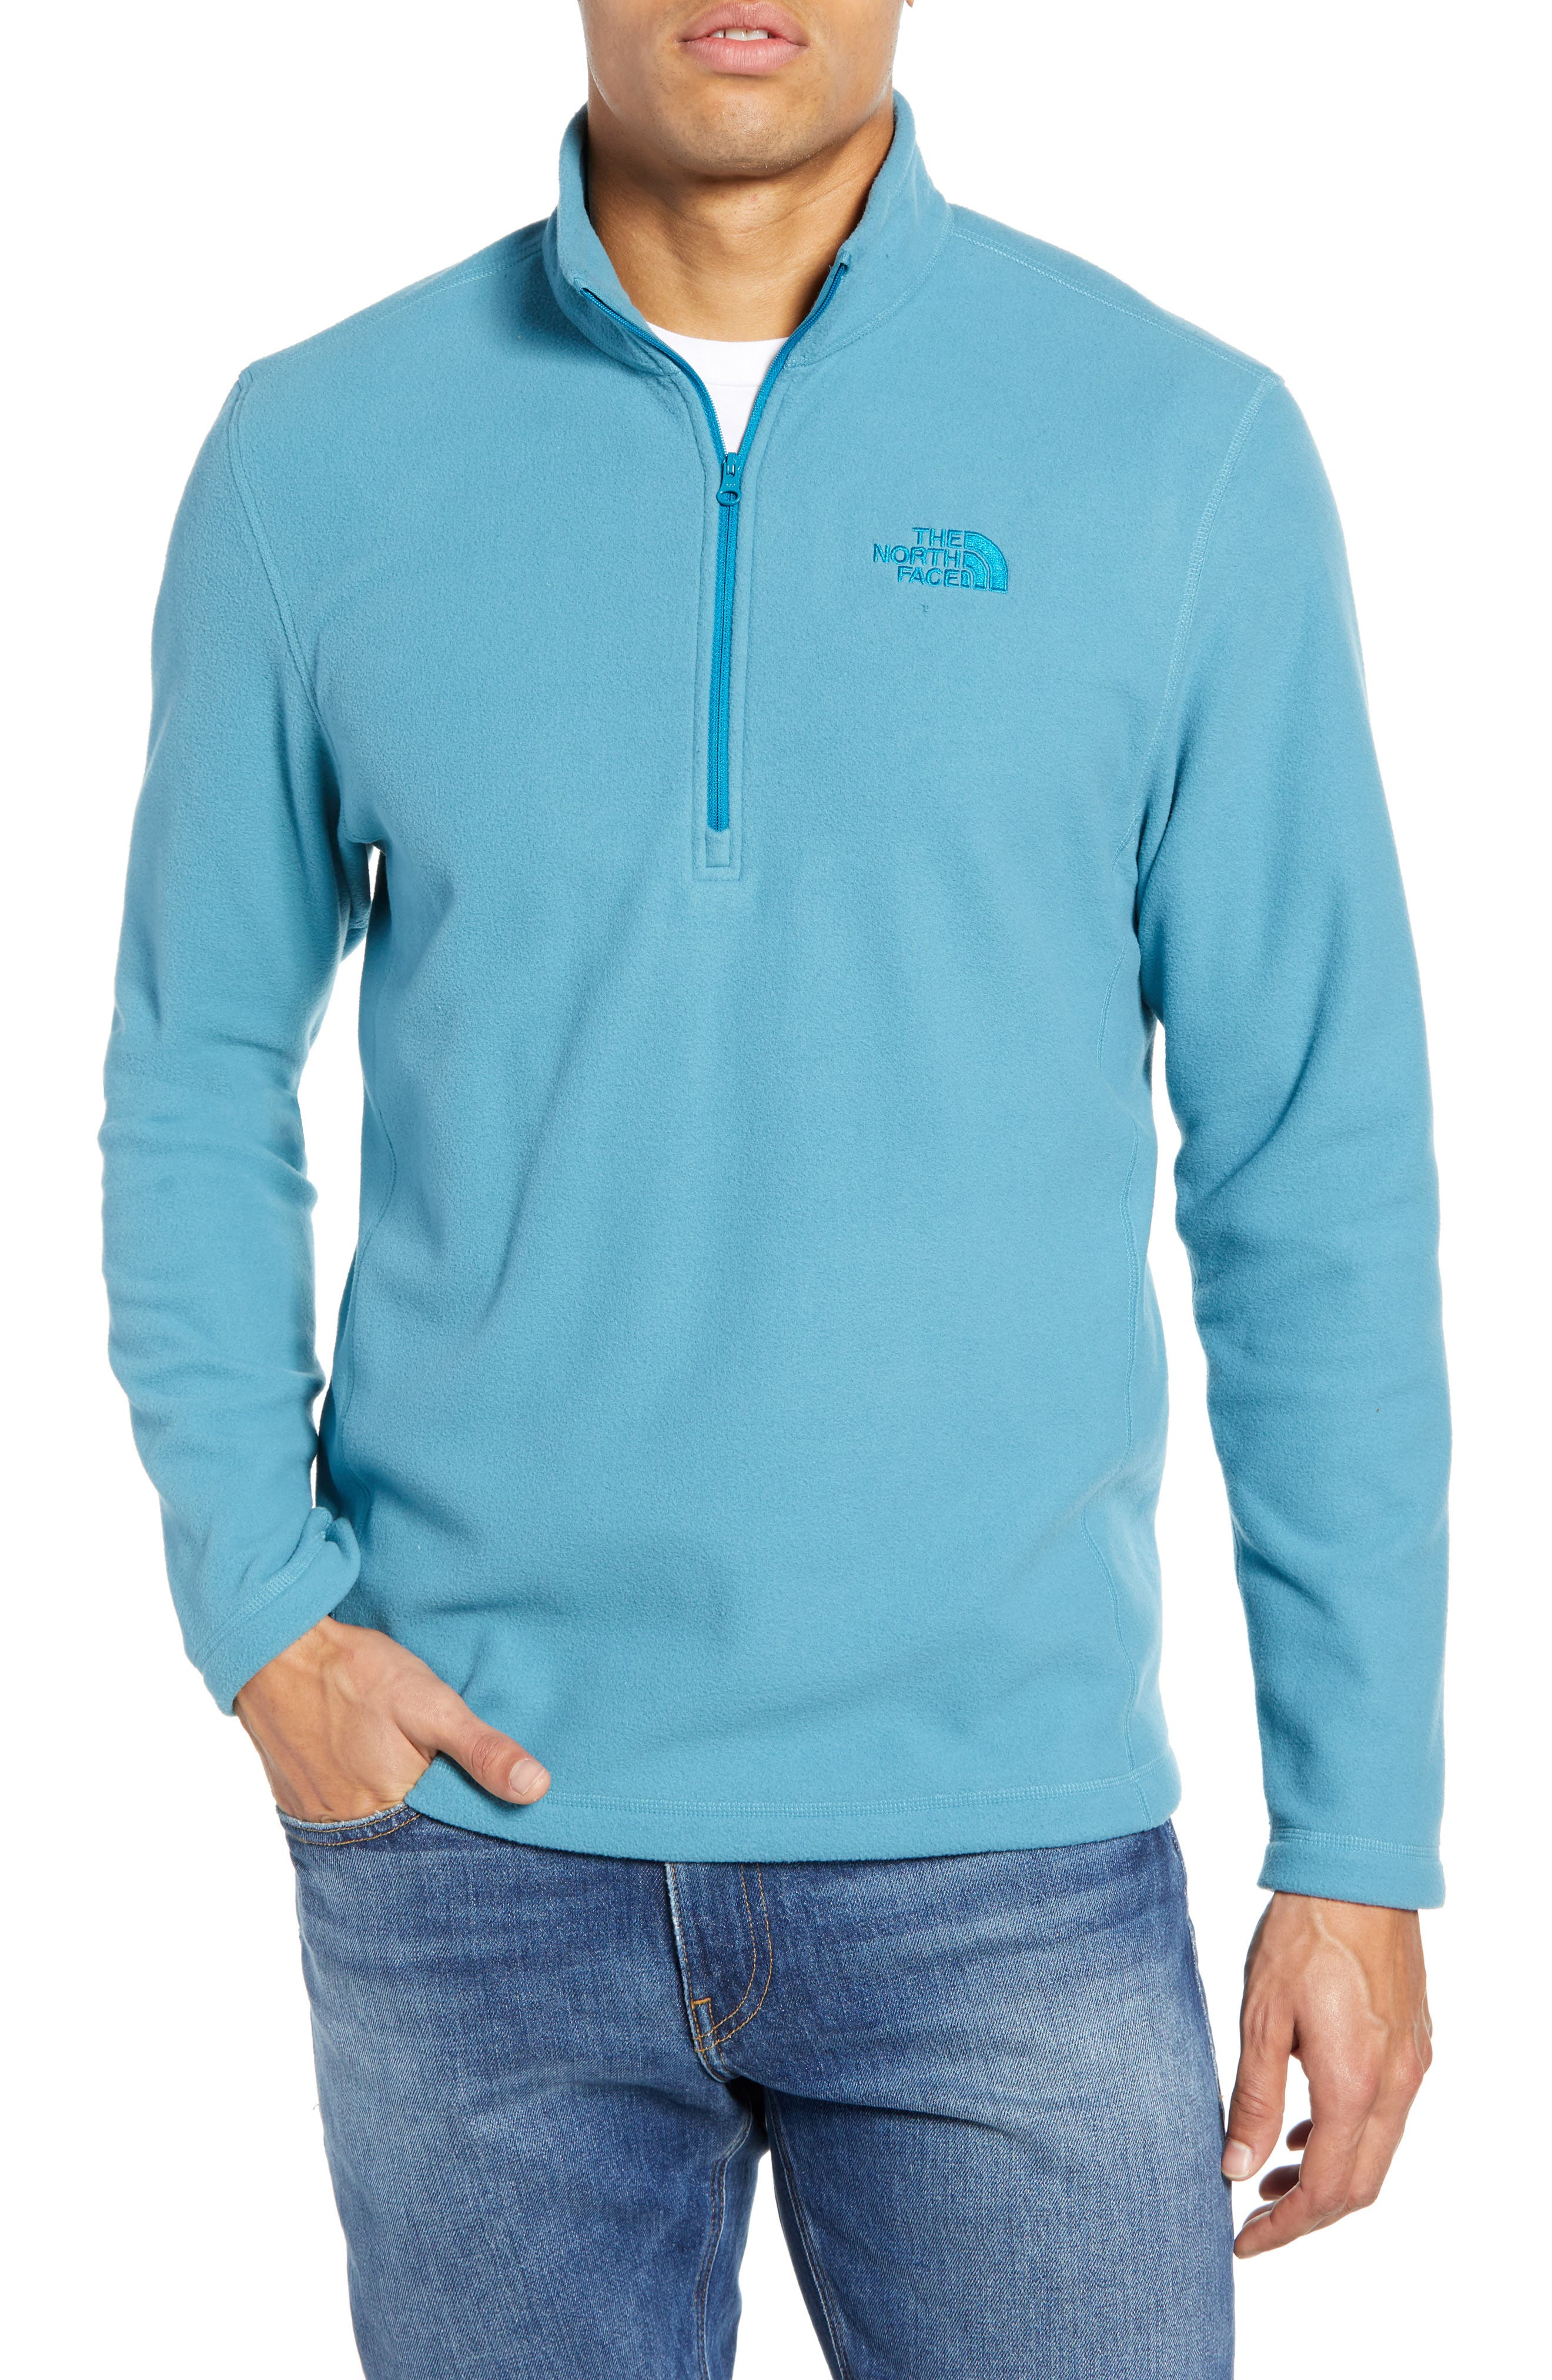 THE NORTH FACE, 'TKA 100 Glacier' Quarter Zip Fleece Pullover, Main thumbnail 1, color, AZTEC BLUE